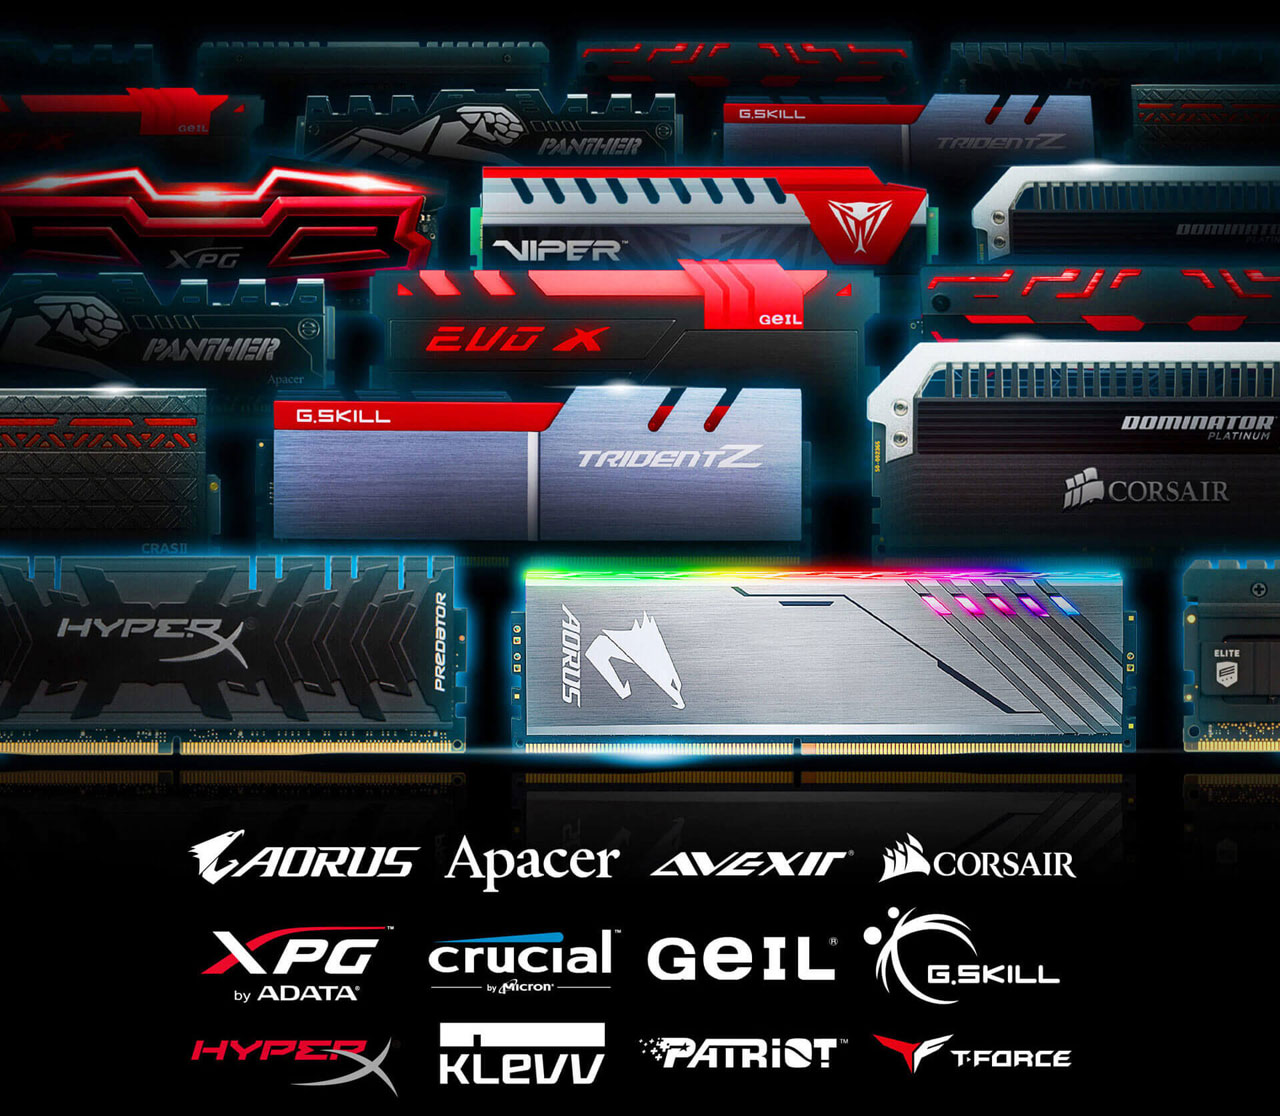 Broad DDR4 Compatibility with Support List of 1000+ DDR4 Validated!